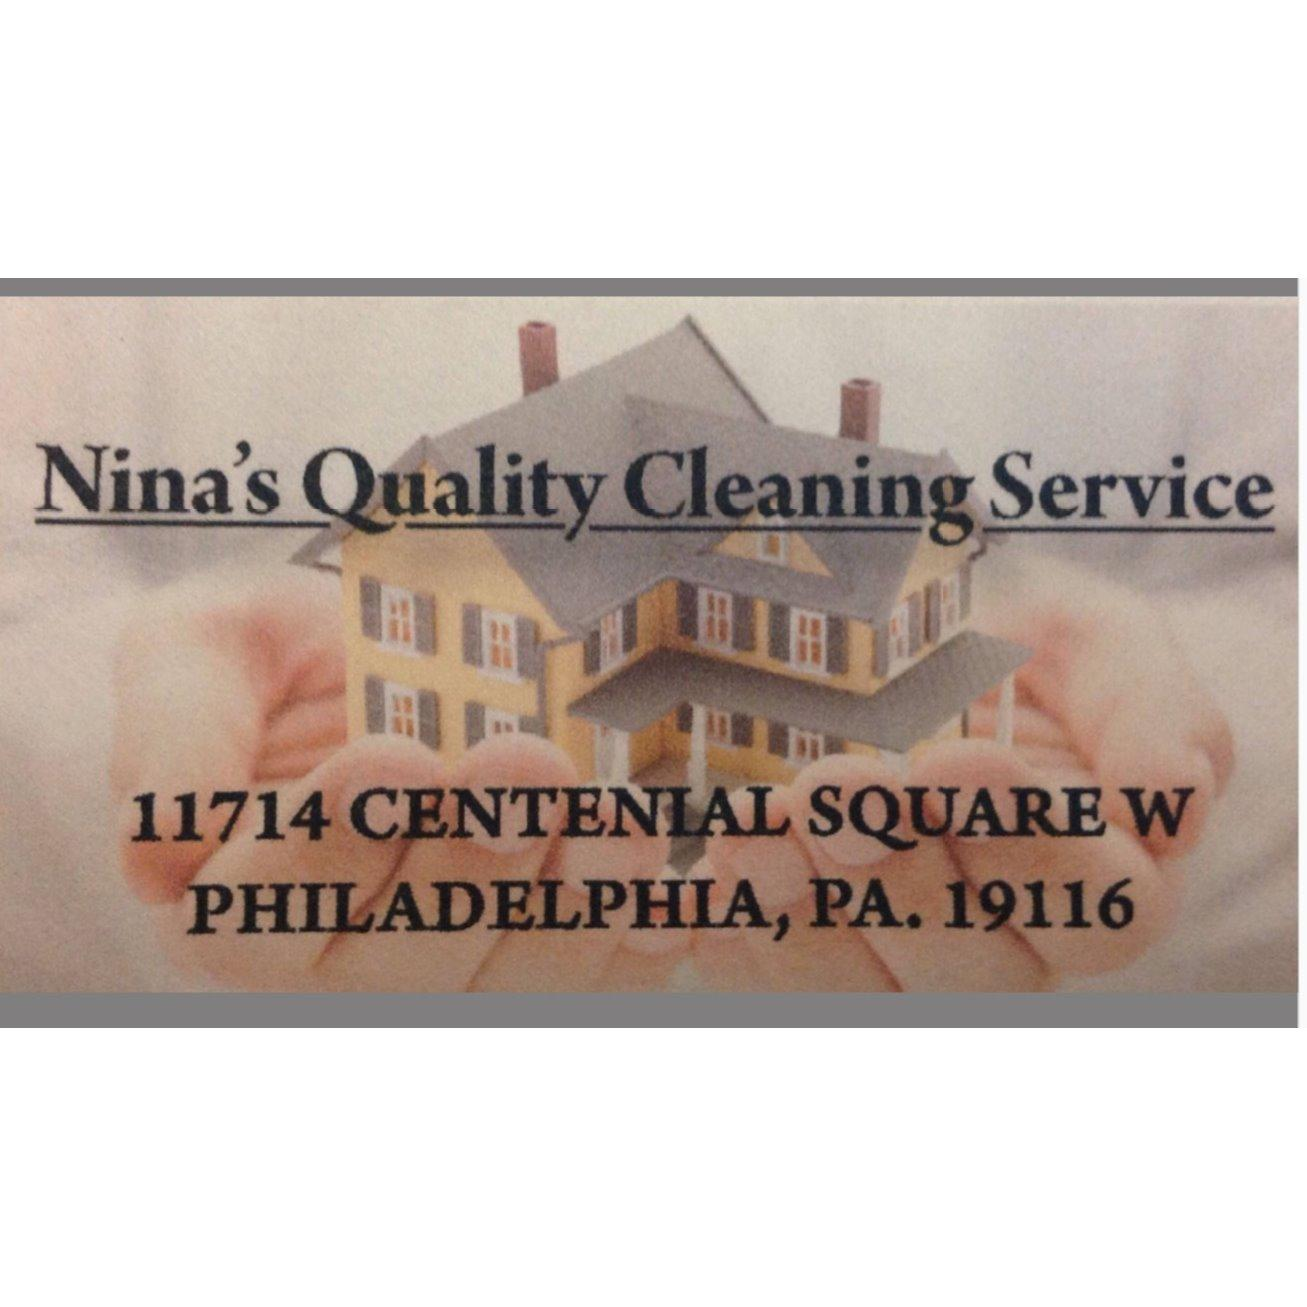 Nina's Quality Cleaning Service